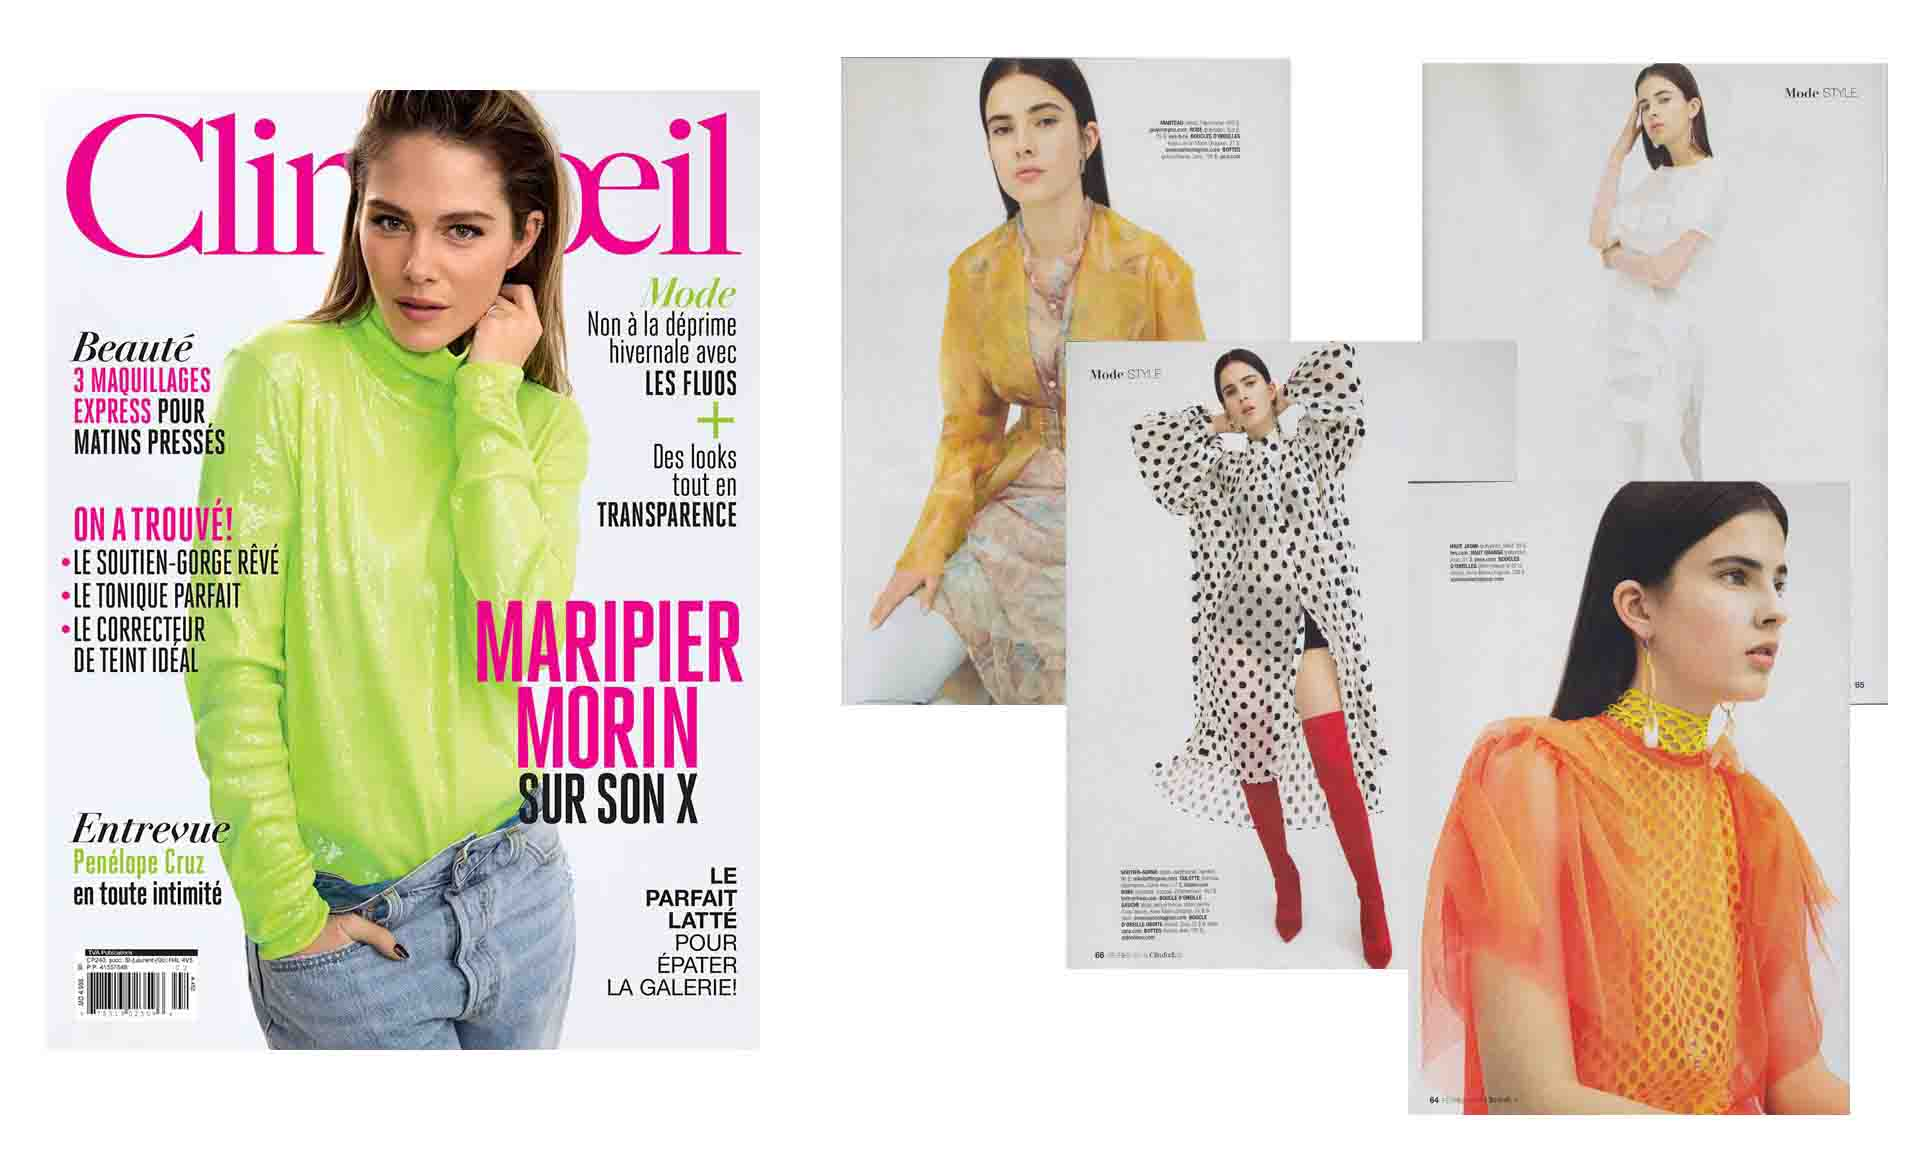 The POINT OF ORIGIN collection in the Clin d'Oeil magazine